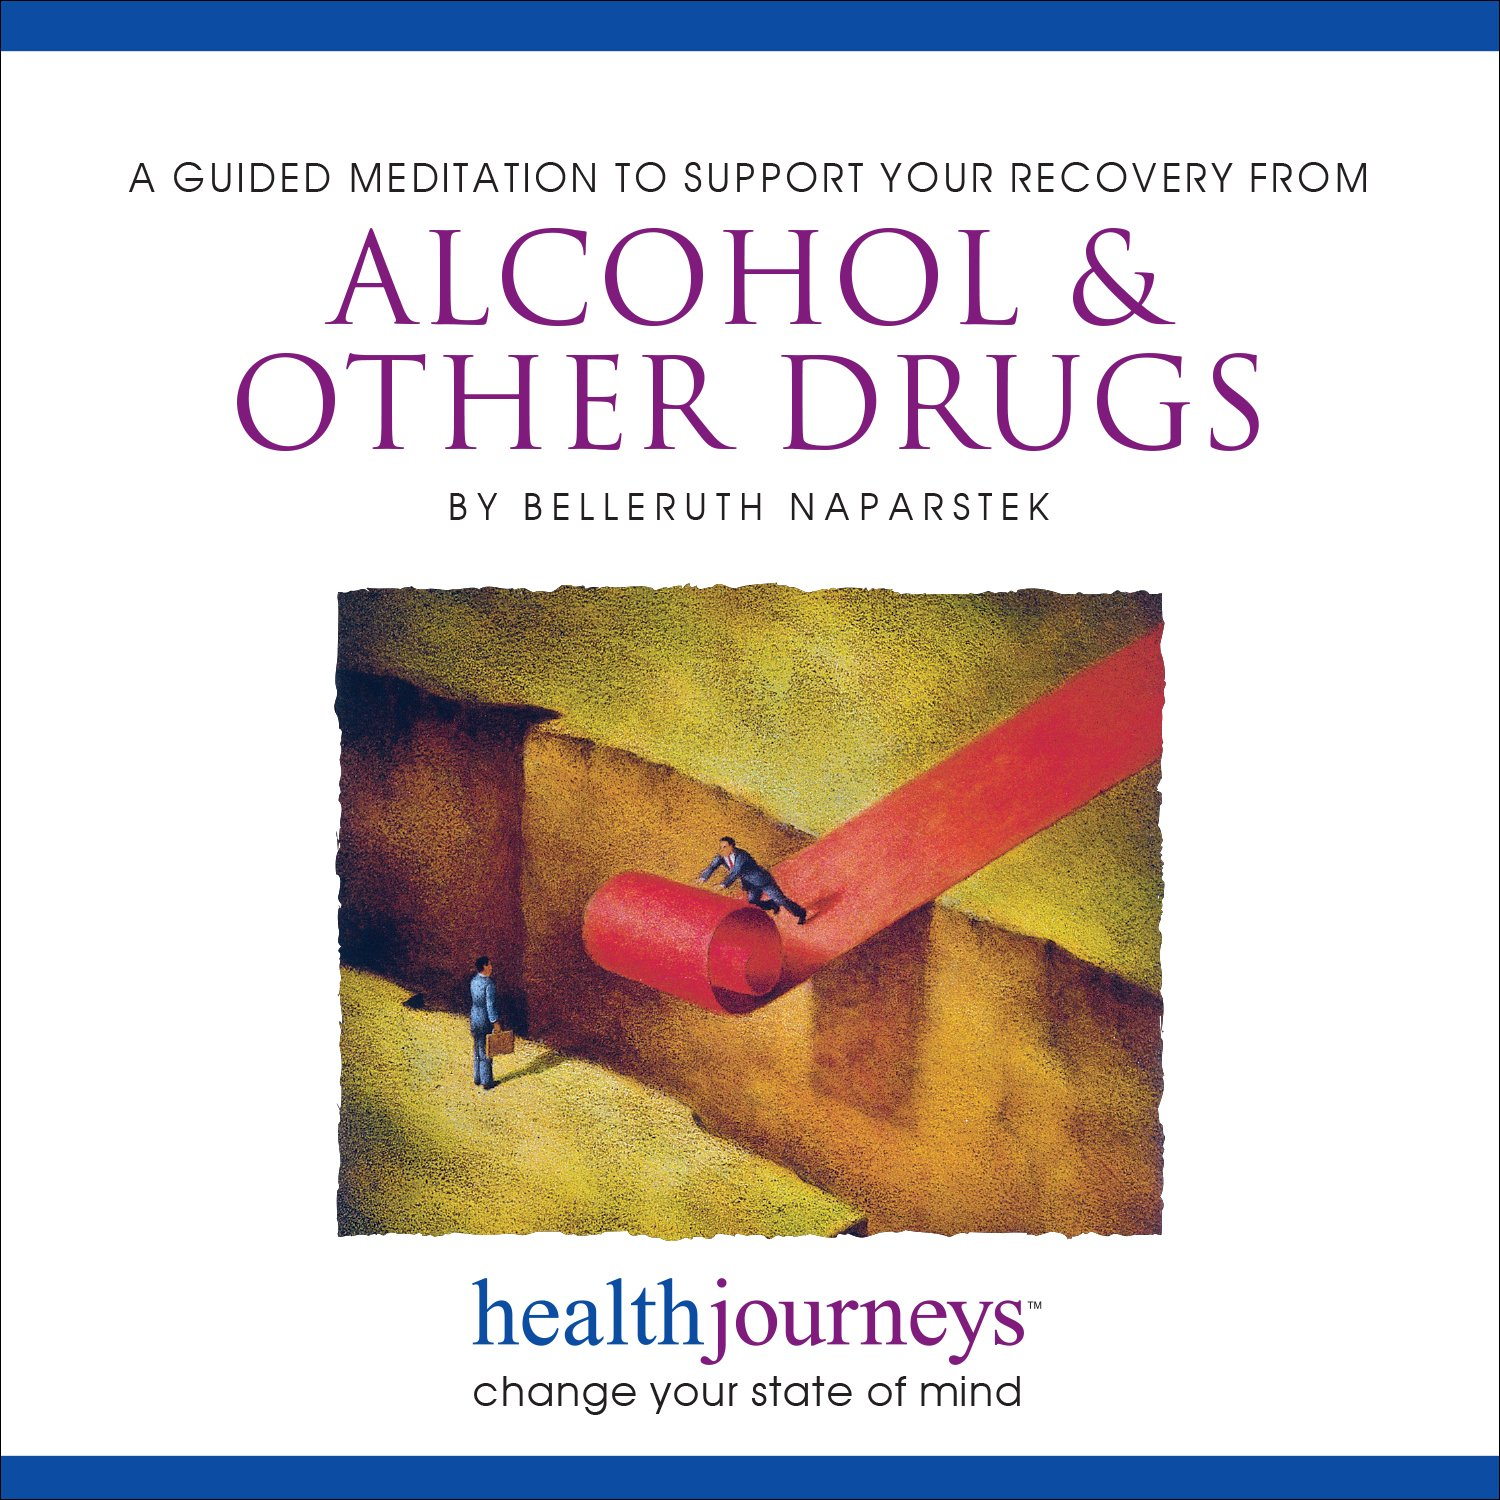 Meditations to Help with Alcohol & Other Drug Recovery, Guided Meditation Can Help Reduce Addictive Cravings and Improve Relaxation Skills with Healing Words and Soothing Music by Belleruth Naparstek